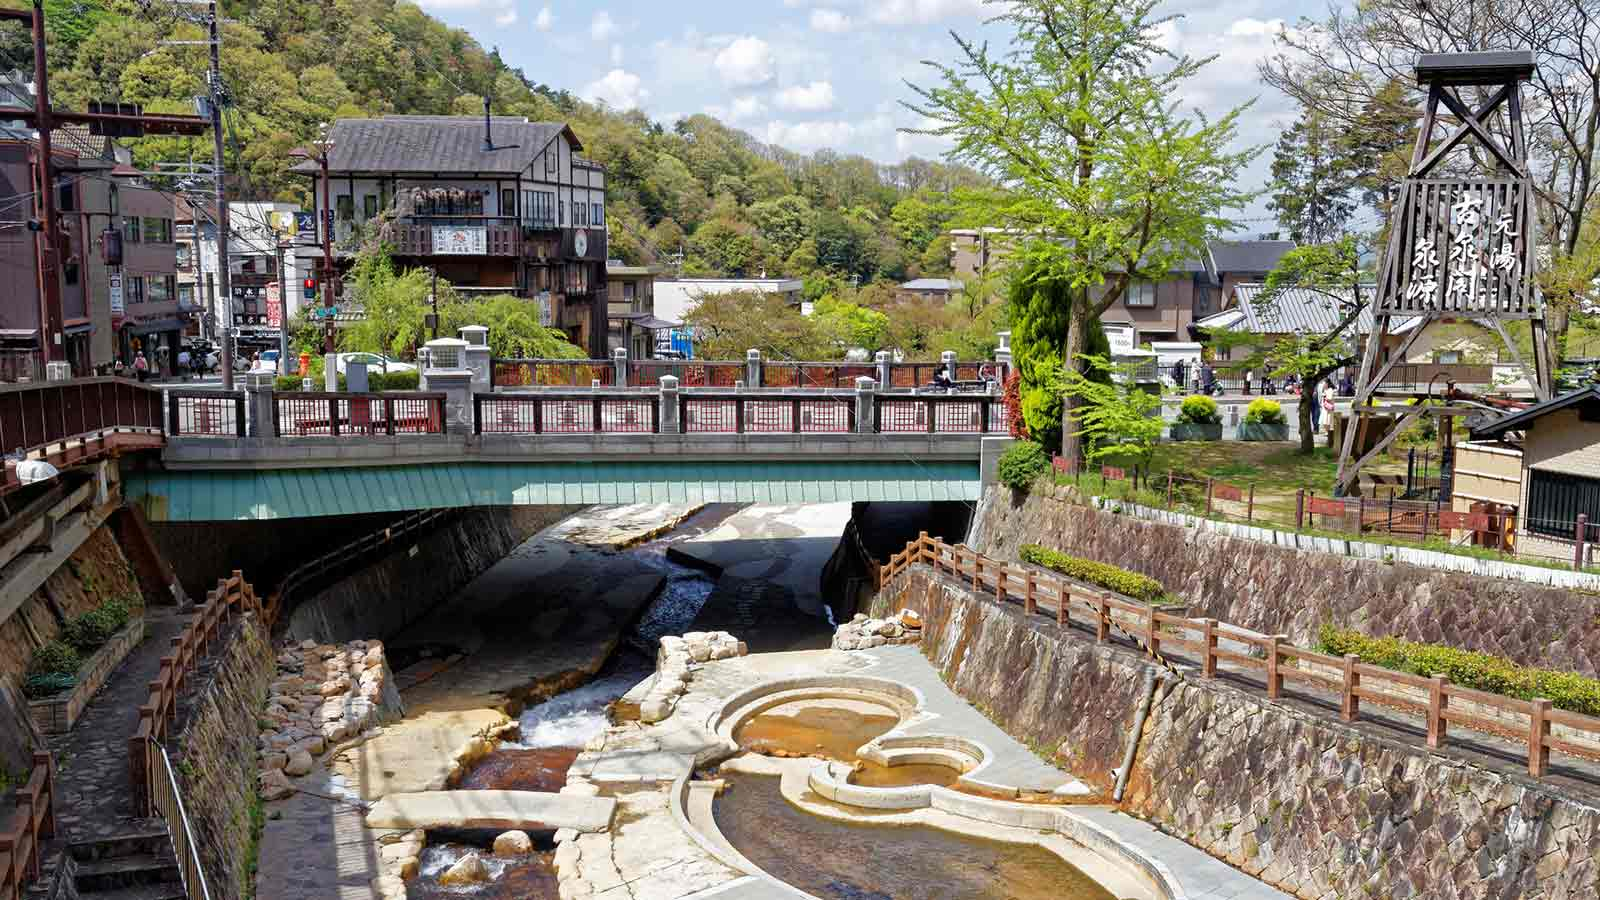 Arima Onsen's hot spring district